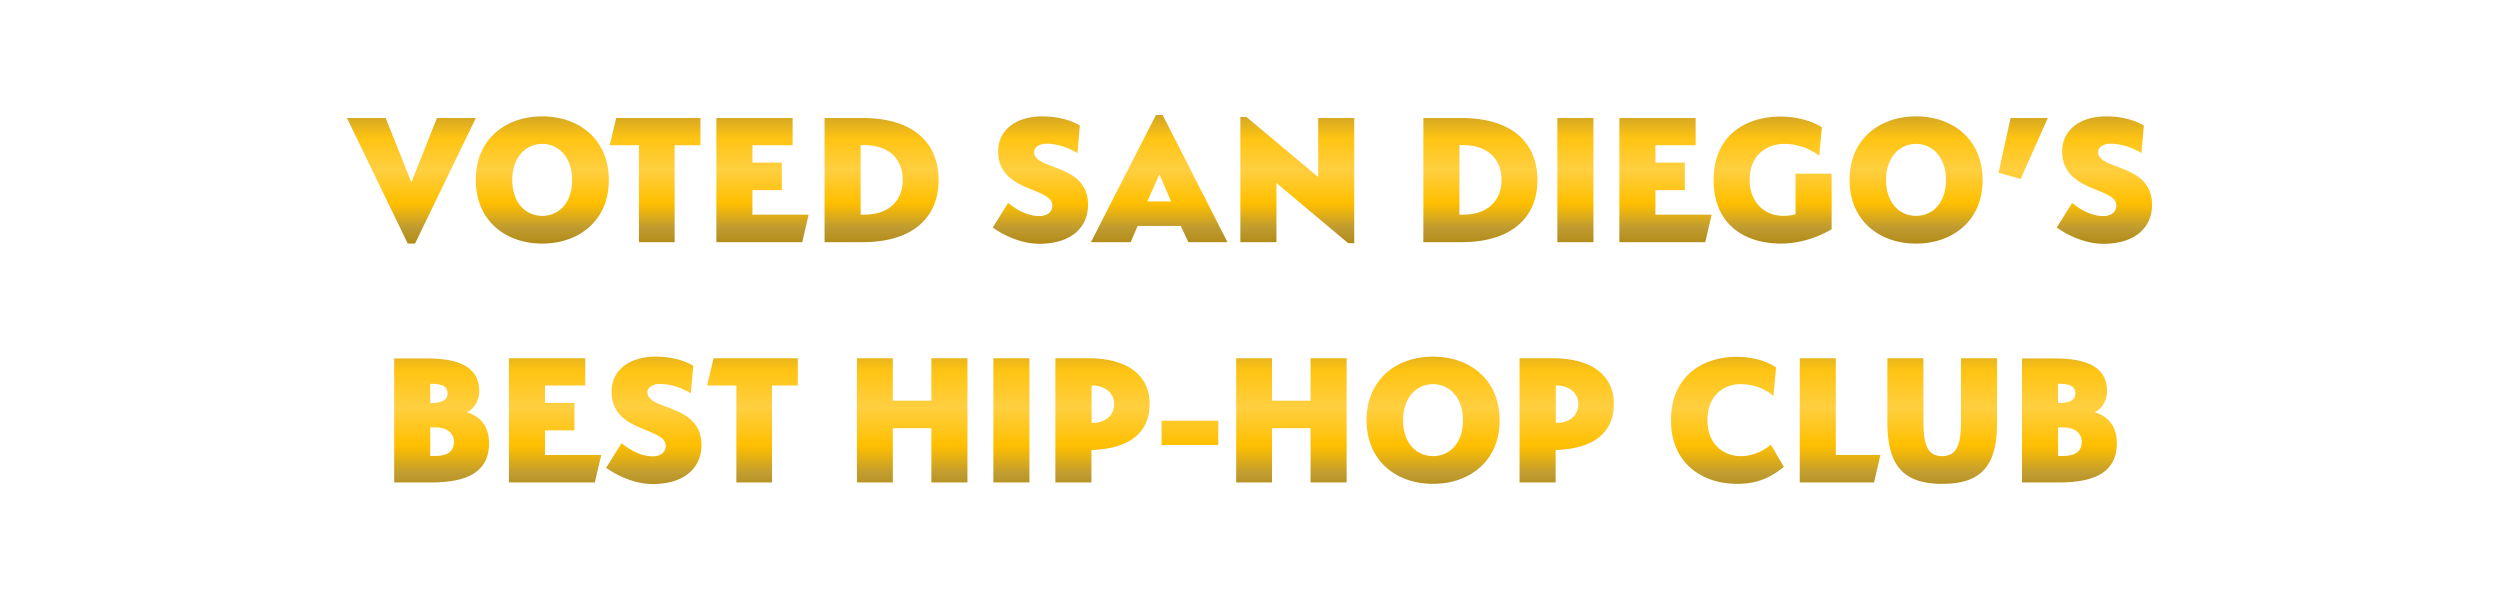 Voted Best Hip-Hop Club San Diego | F6ix